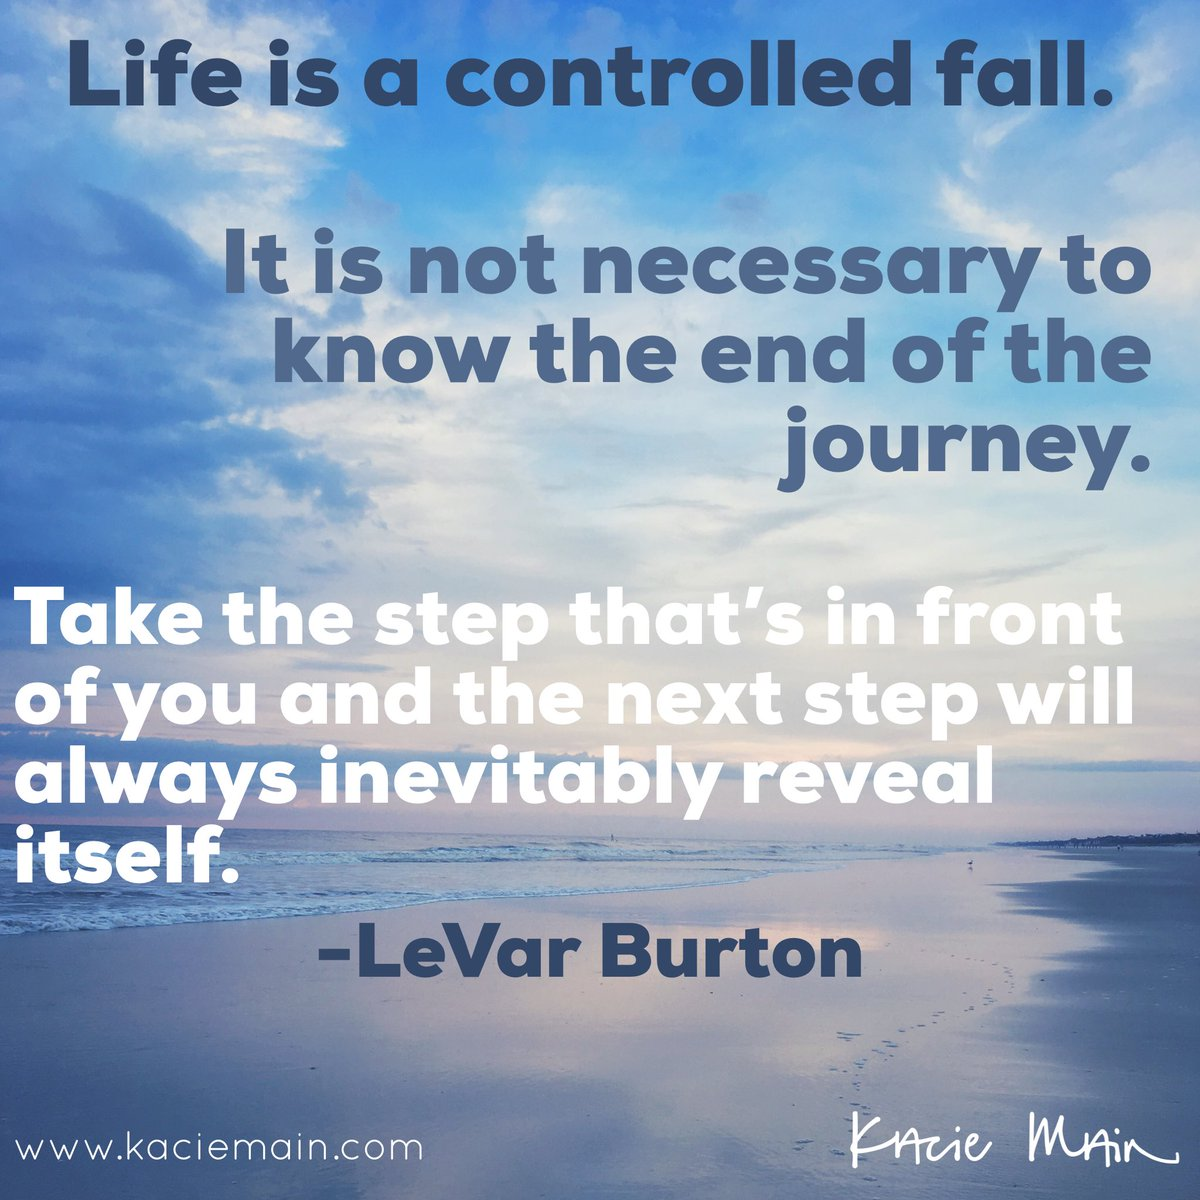 heard this quote on @kuteblackson podcast SOULTALK with @levarburton this morning and loved it. so true! #quotesforlife <br>http://pic.twitter.com/EiTfAZ4zDY